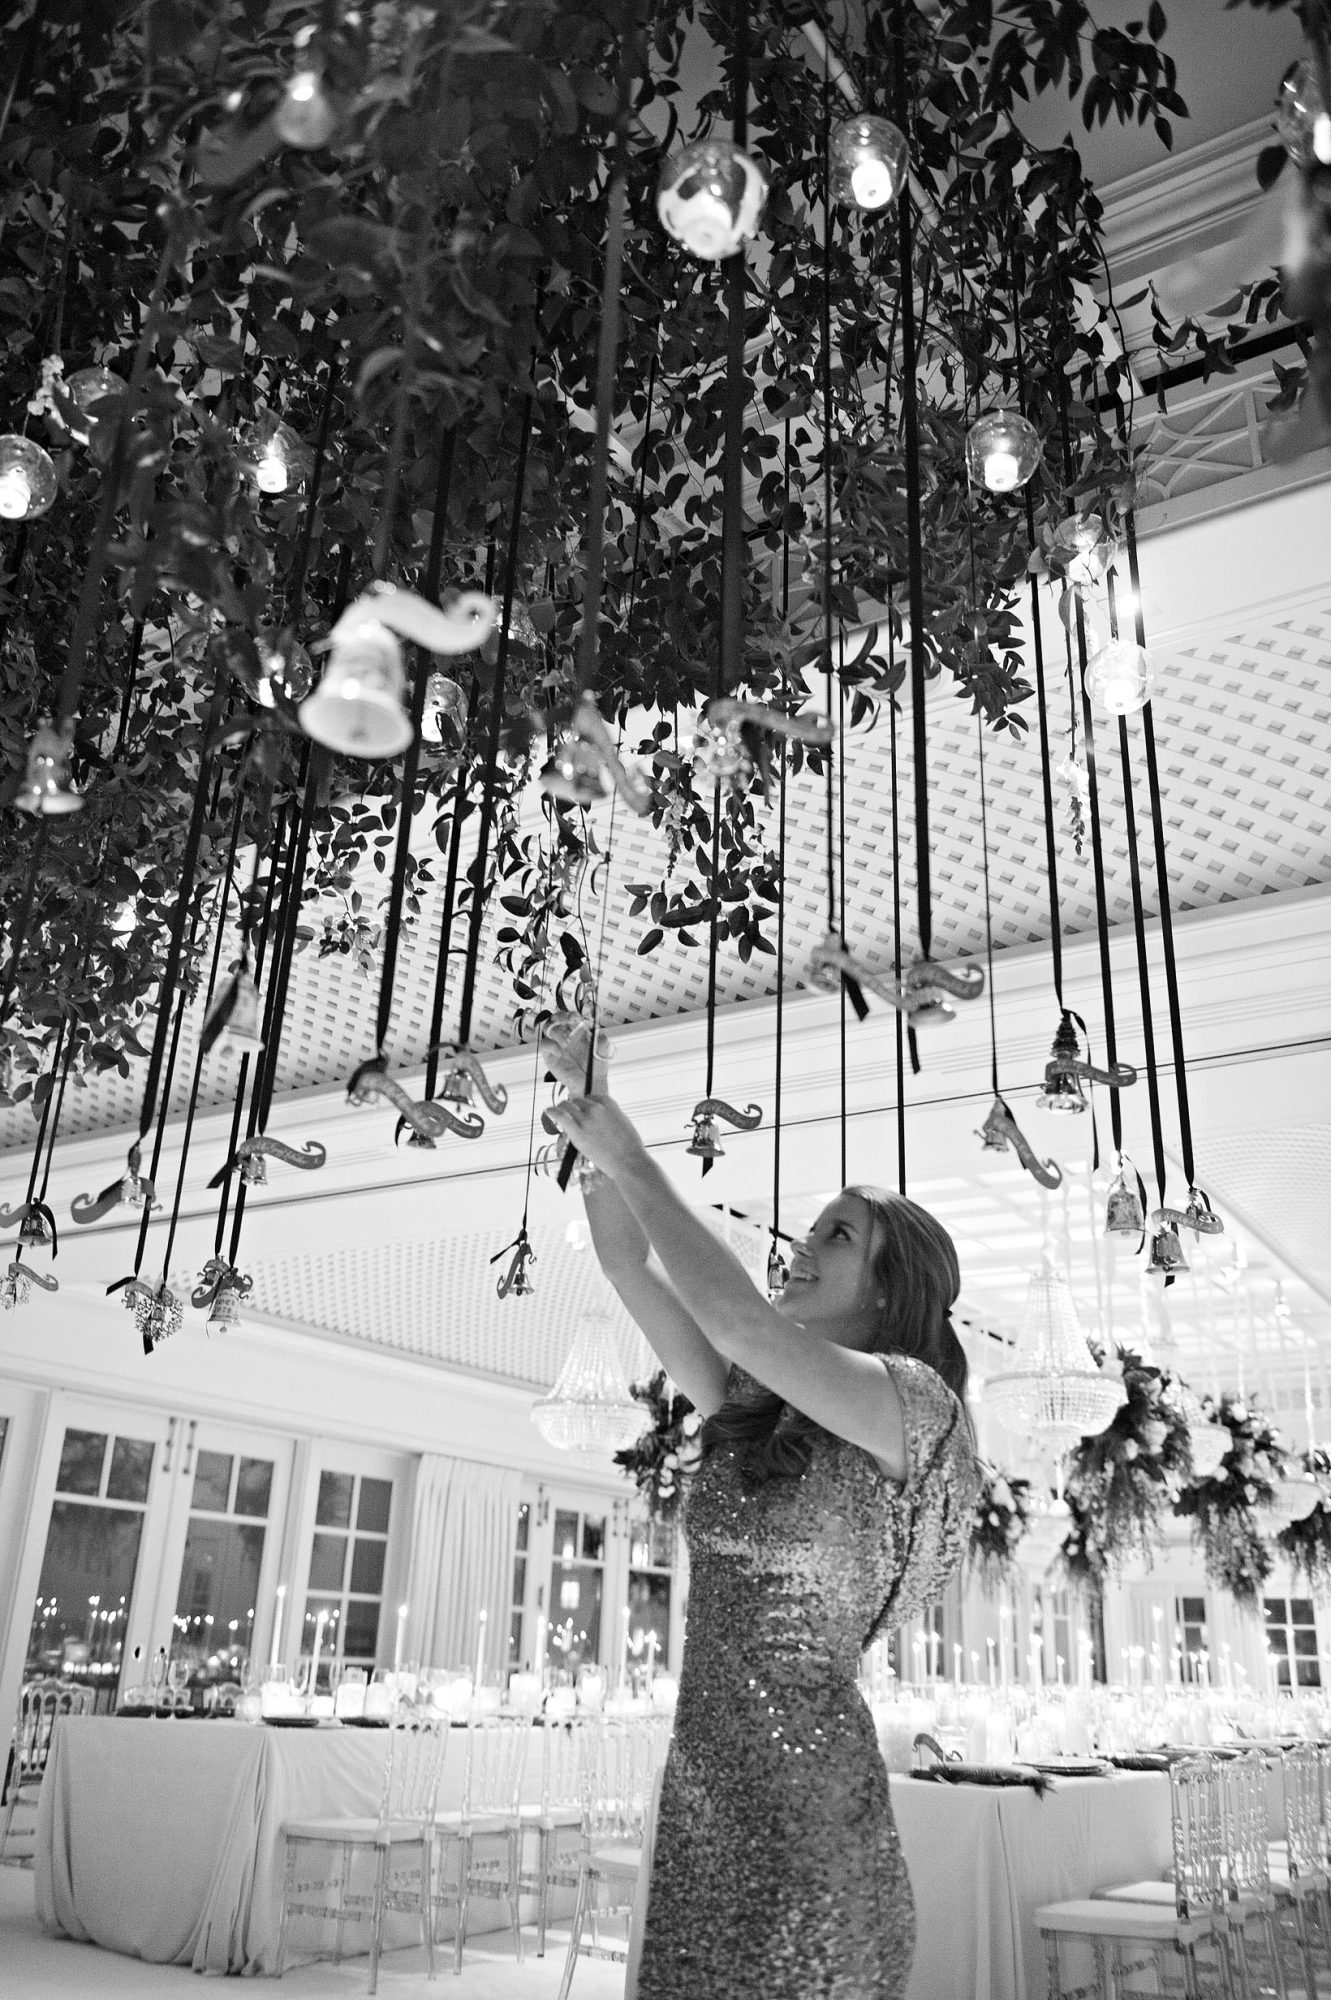 celina rob wedding virginia bells hanging